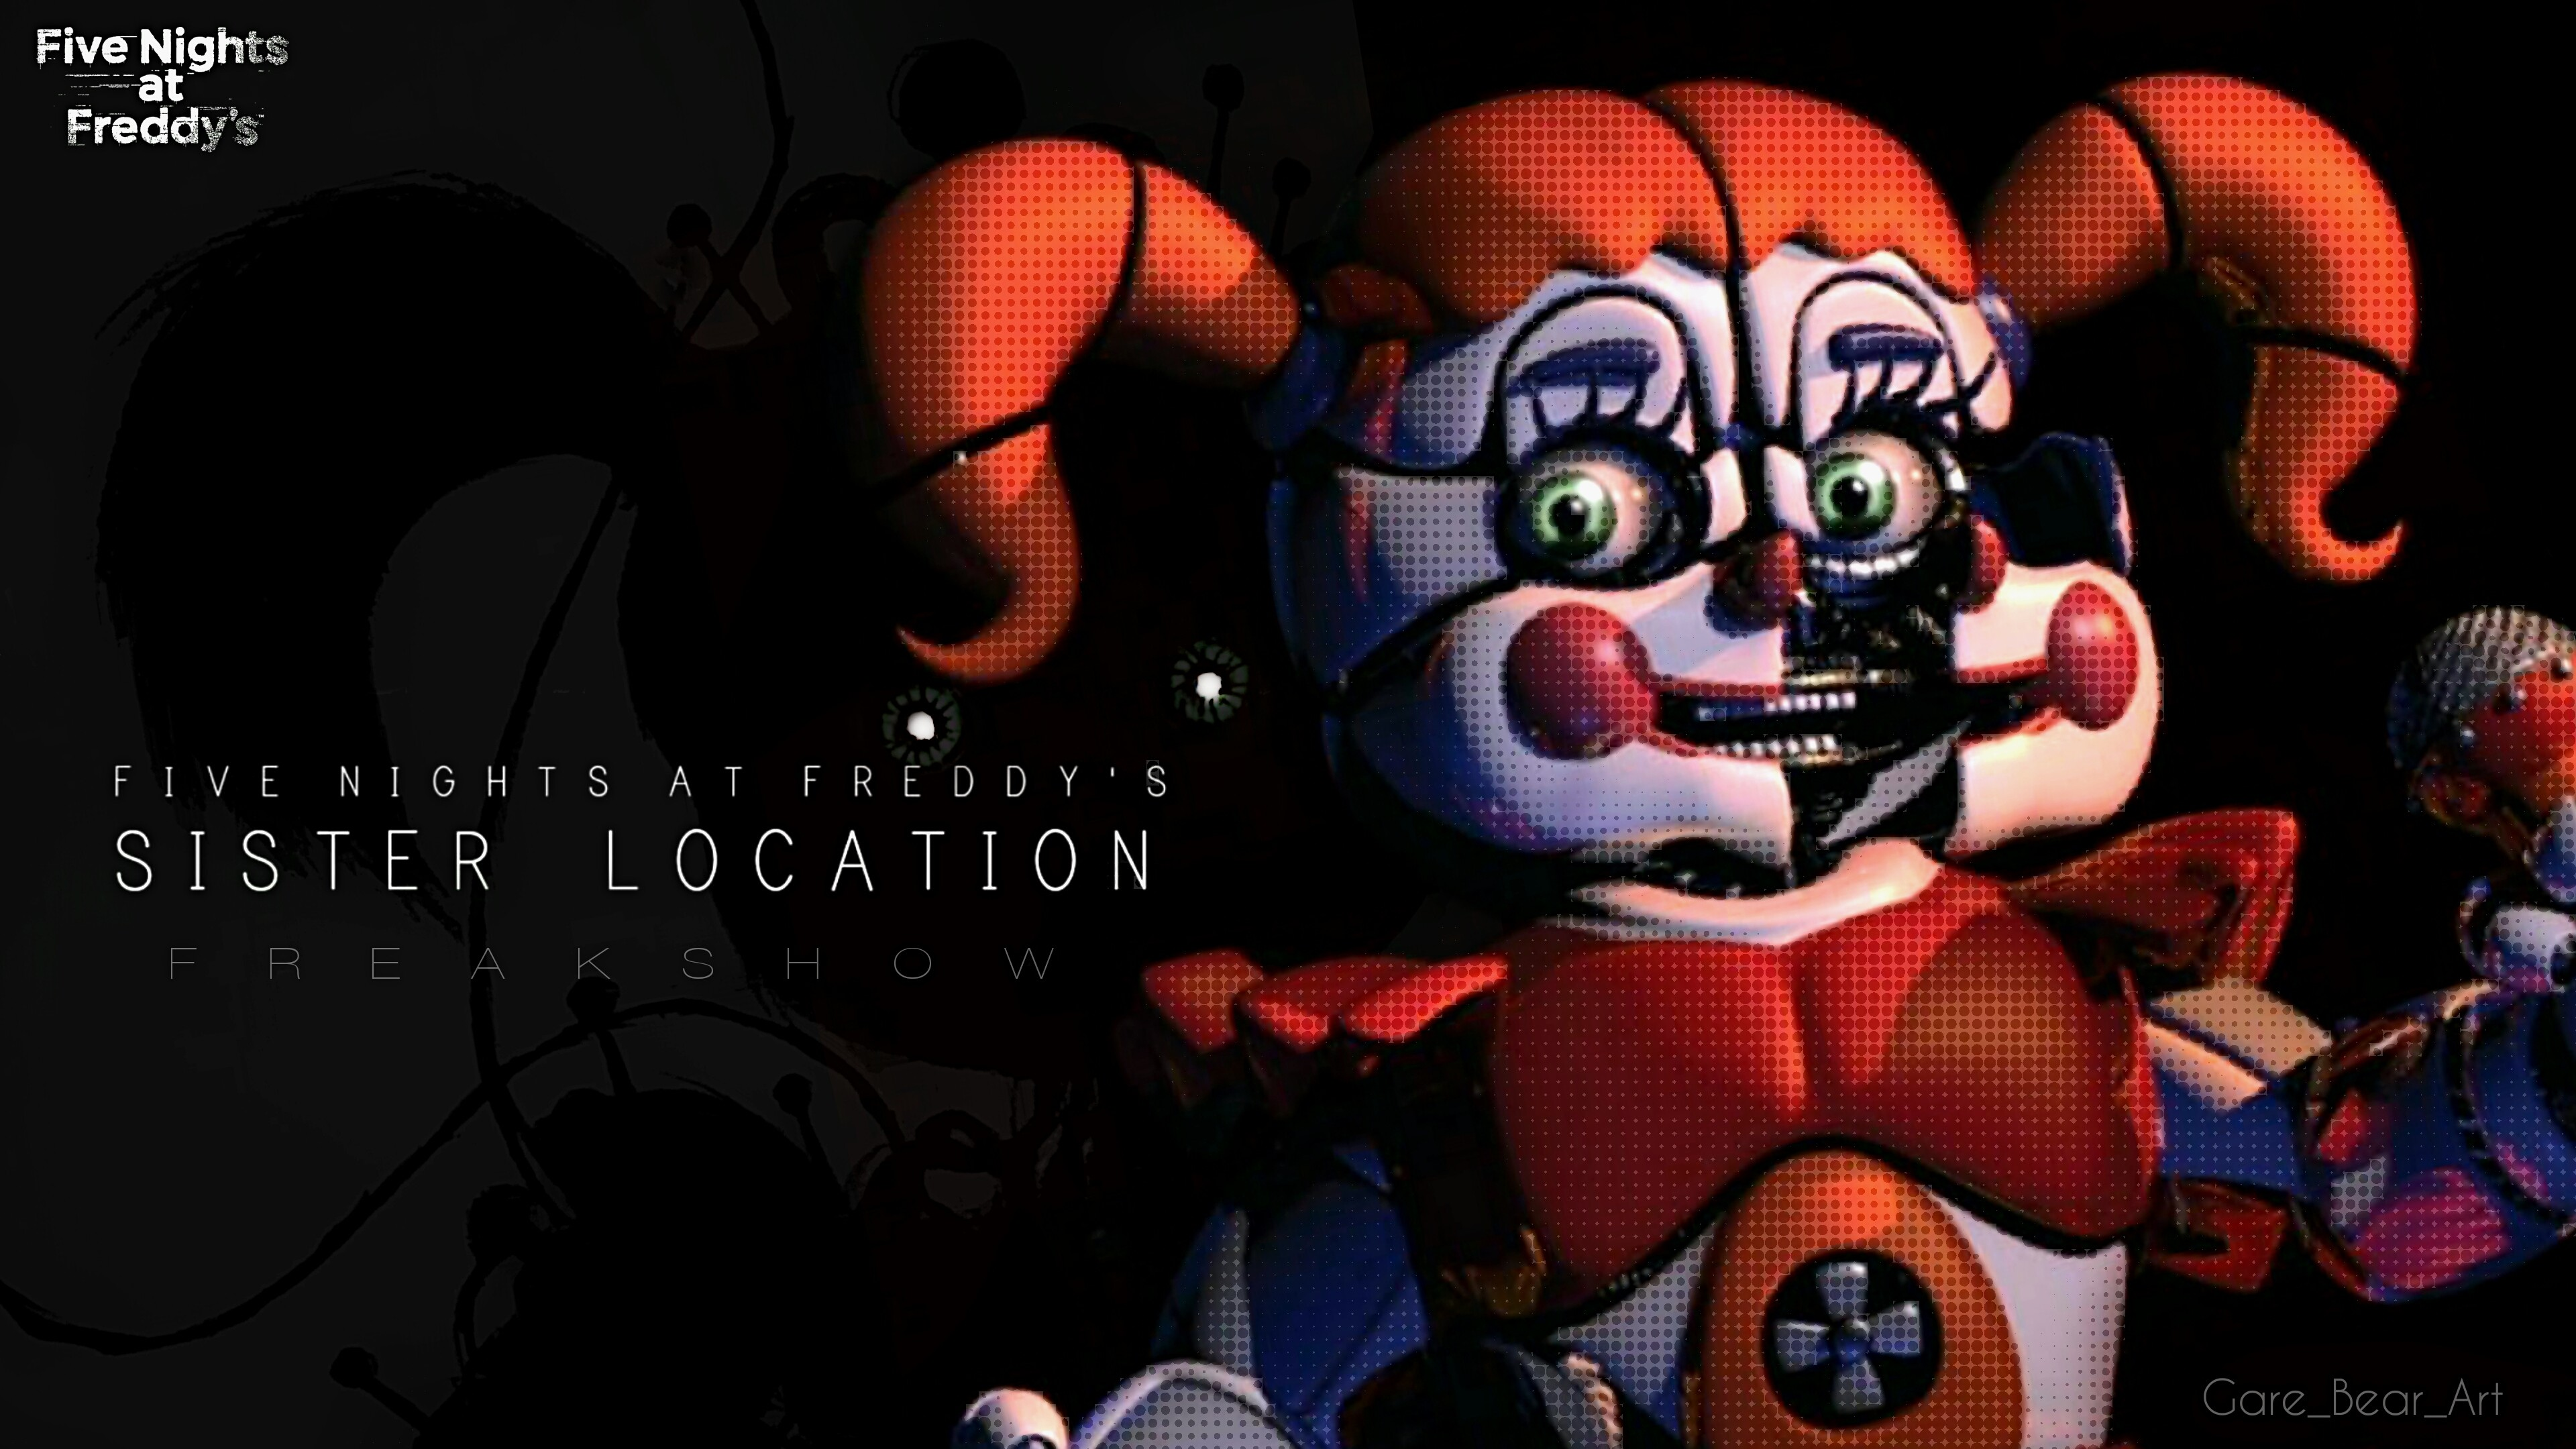 Res: 3840x2160, Fnaf sister location wallpaper BABY freak show by GareBearArt1